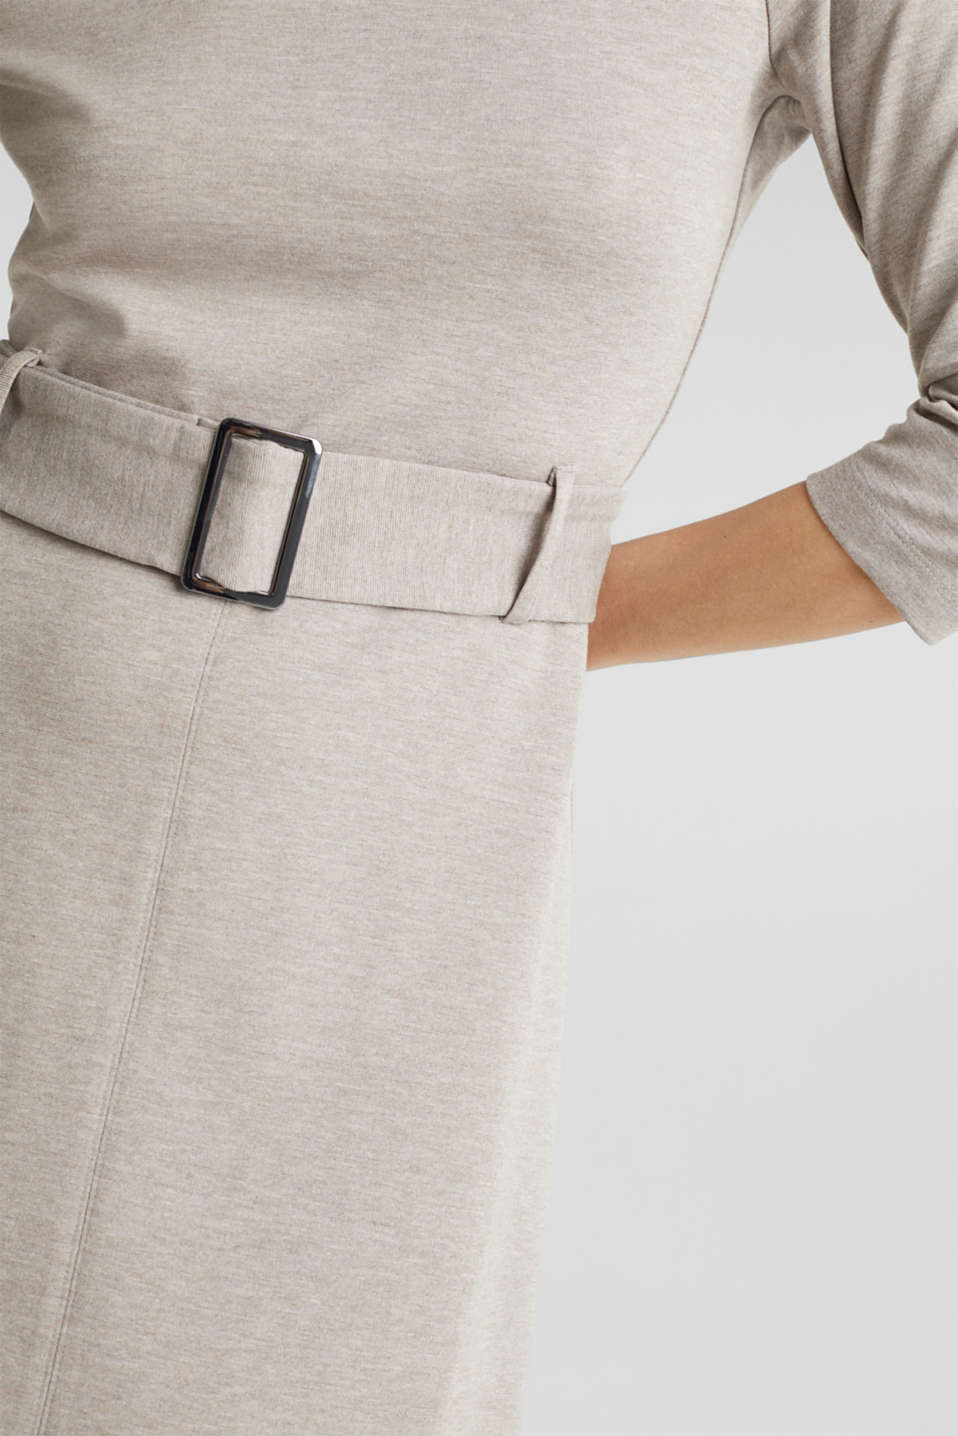 Stretch jersey dress with a belt, LIGHT BEIGE, detail image number 6